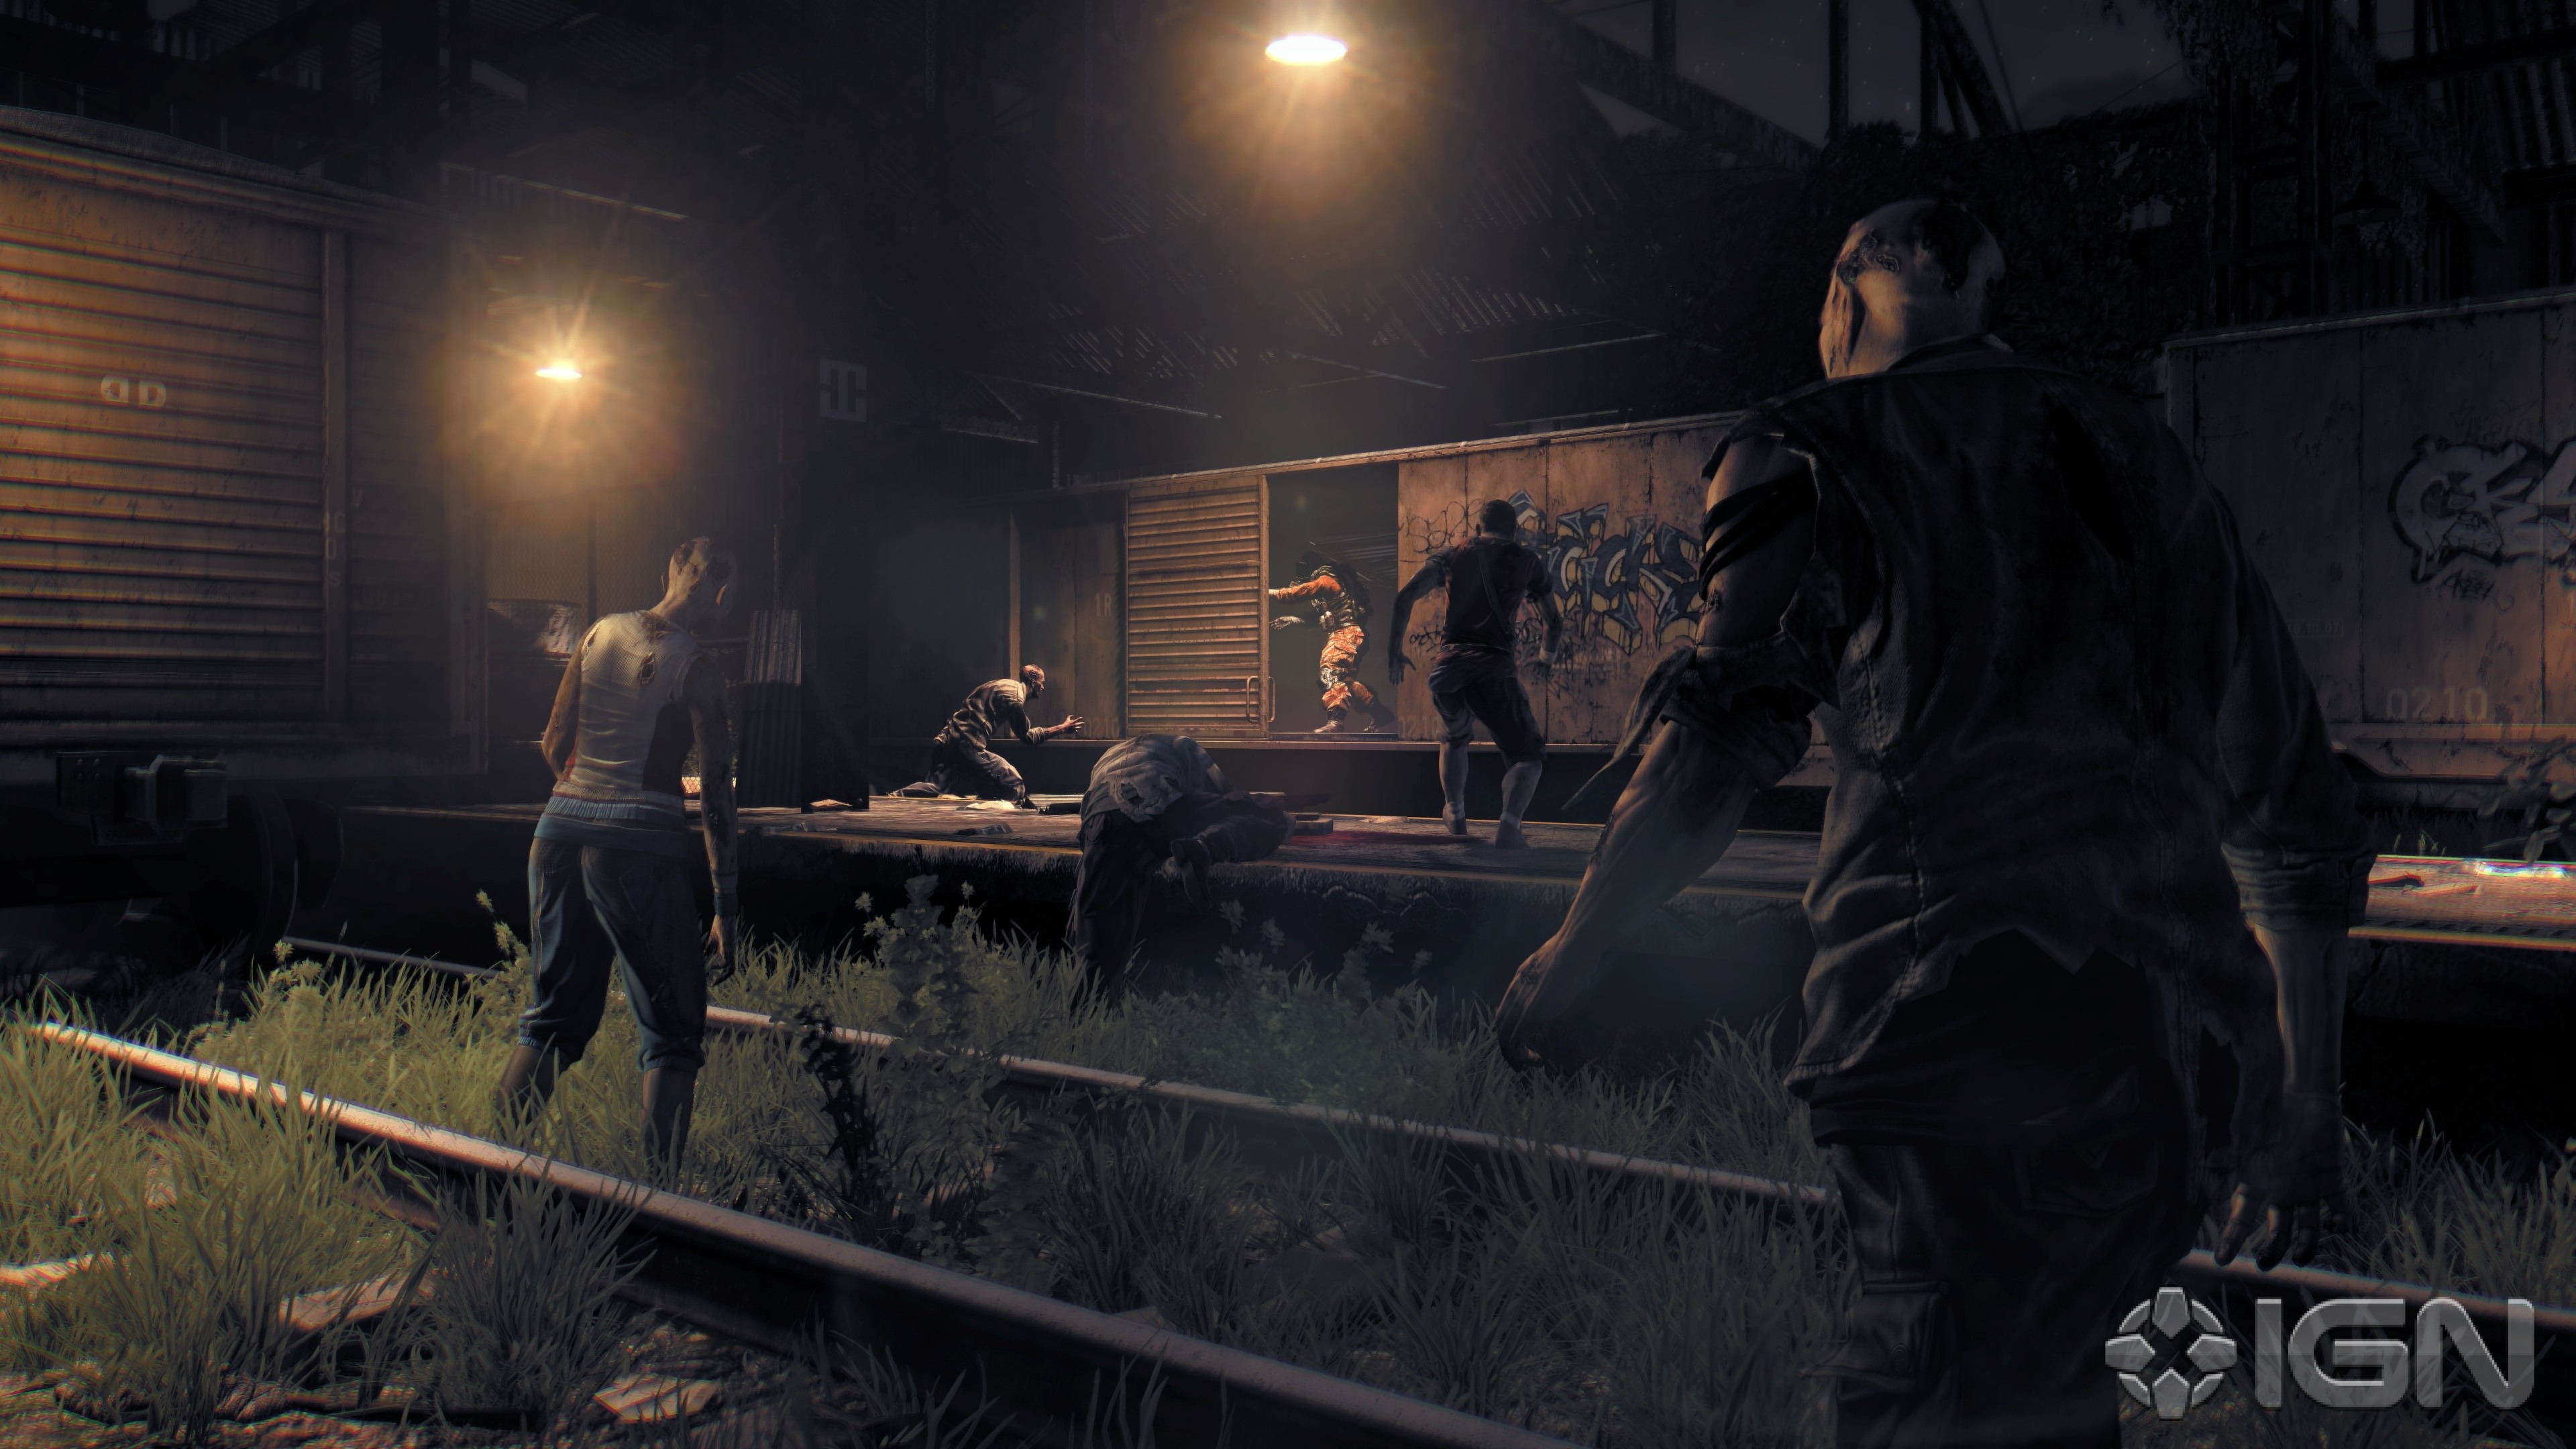 Dying Light Images 3840x2160